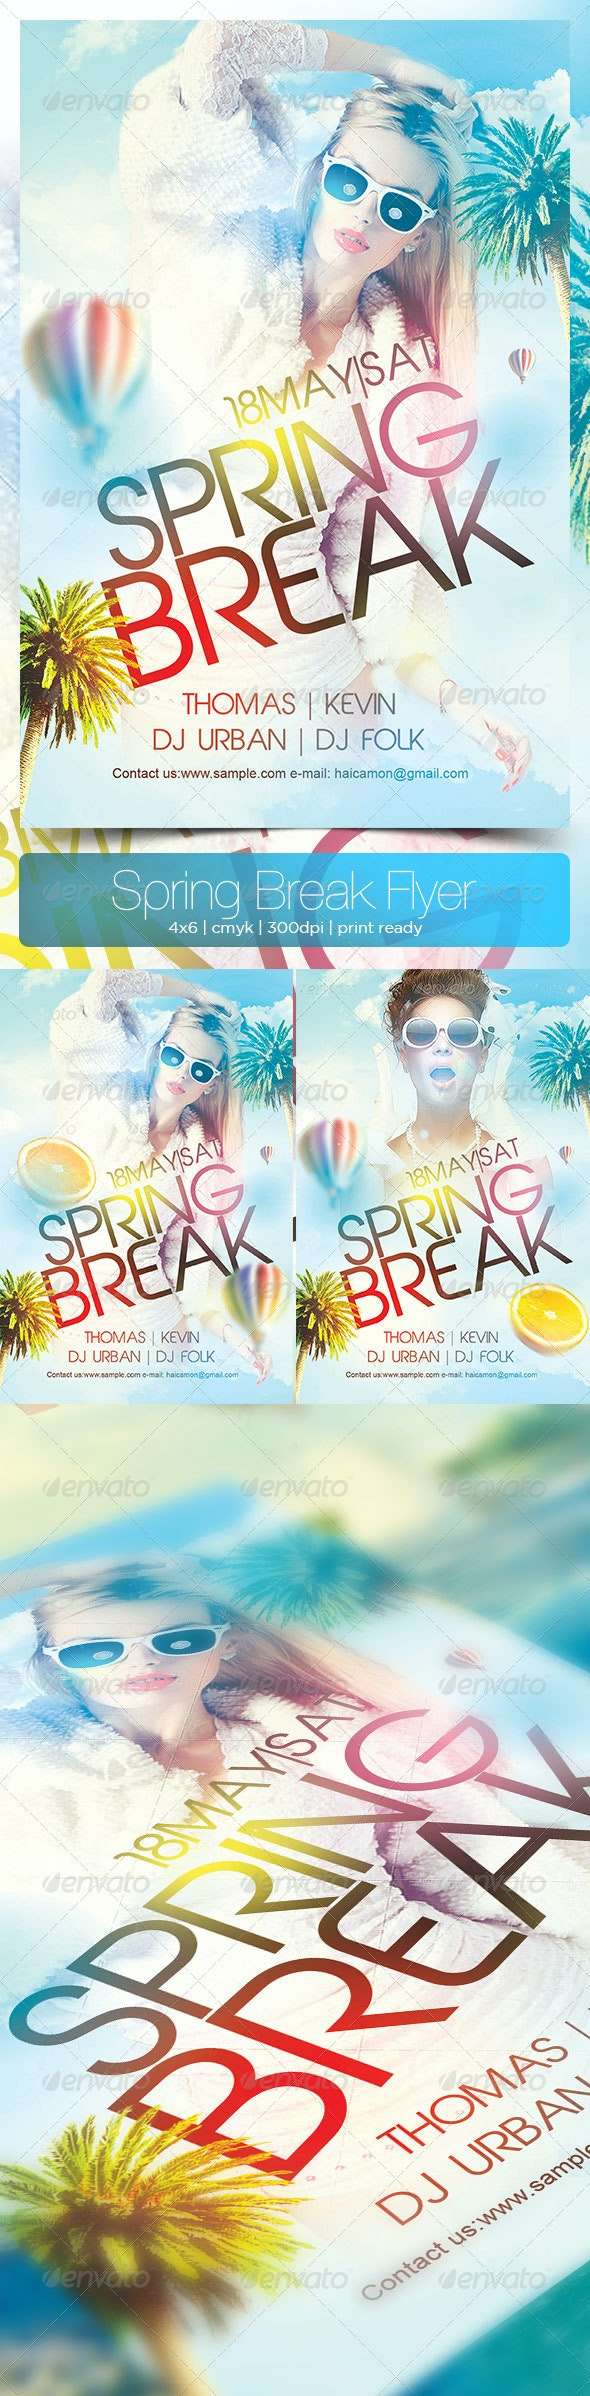 Spring Break Flyer - Flyers Print Templates